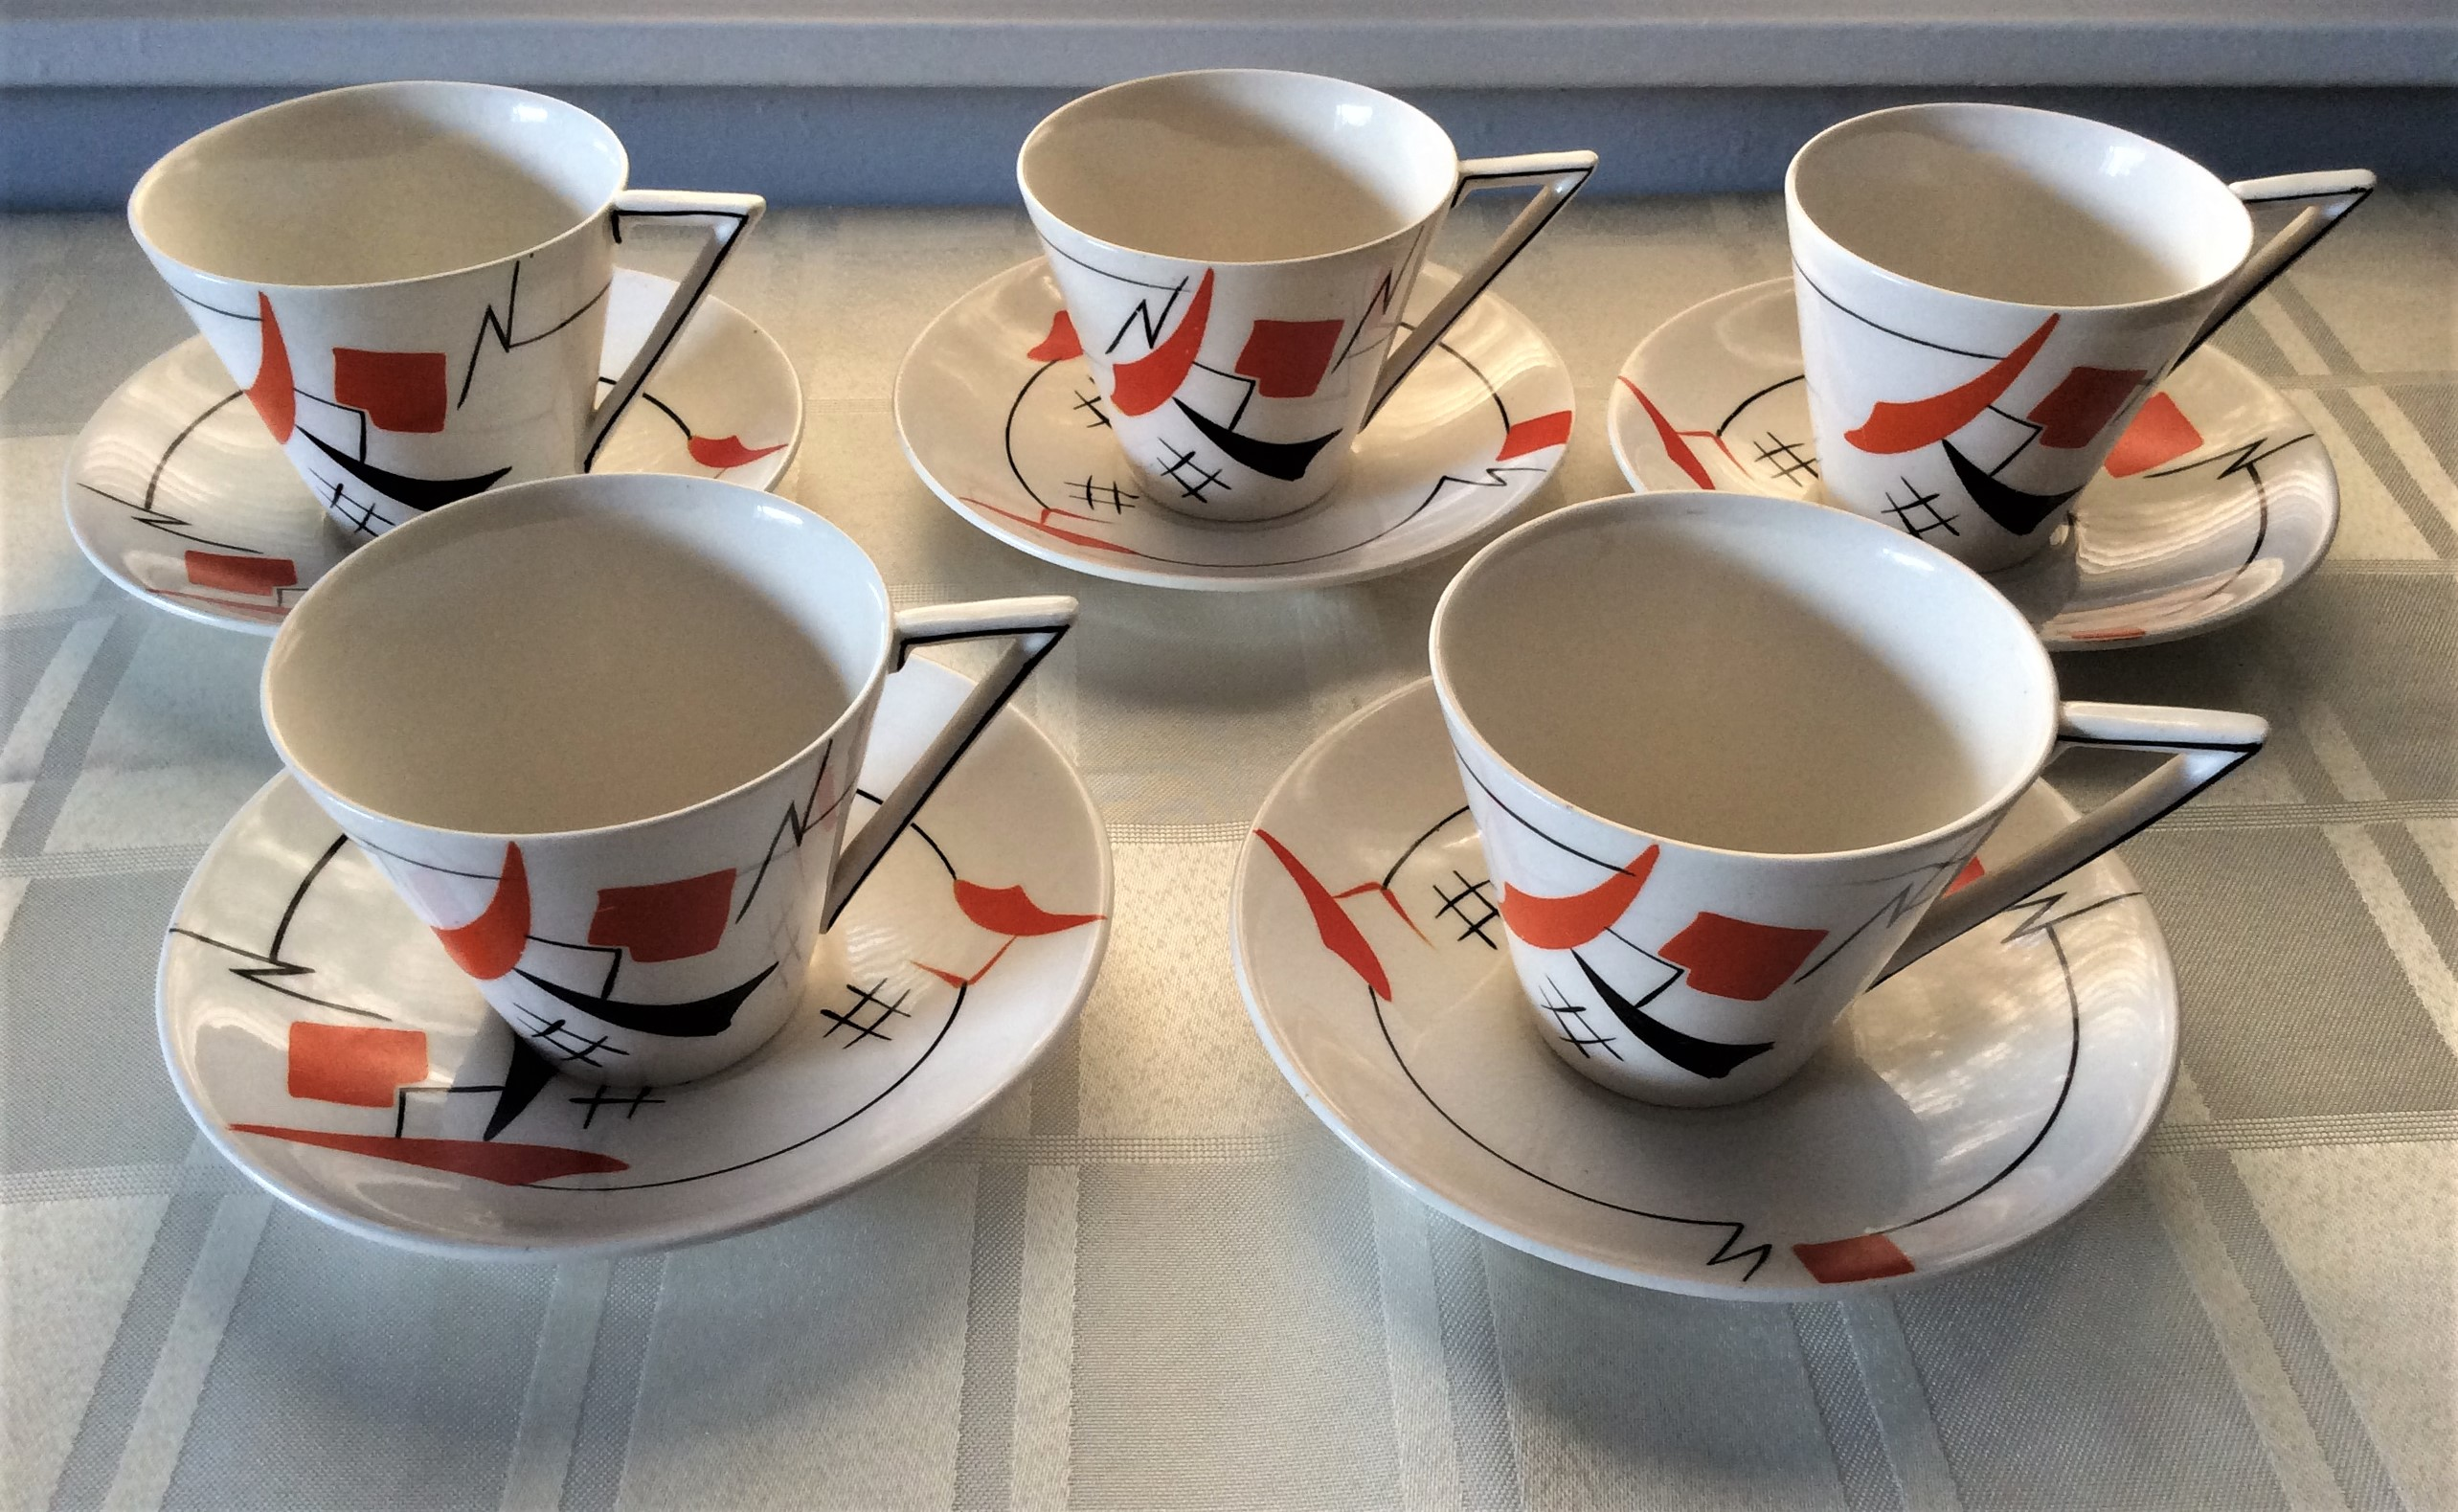 ART DECO WEDGWOOD JAZZ AGE DESIGN TEA SET Stunning 30s 18-piece Ivory coloured Deco tea set is detailed in orange and black with a geometric Jazz age design, which was so typical of the period.  All pieces are marked Wedgwood & Co England and stamped with the 'Unicorn' Wedgwood trademark.